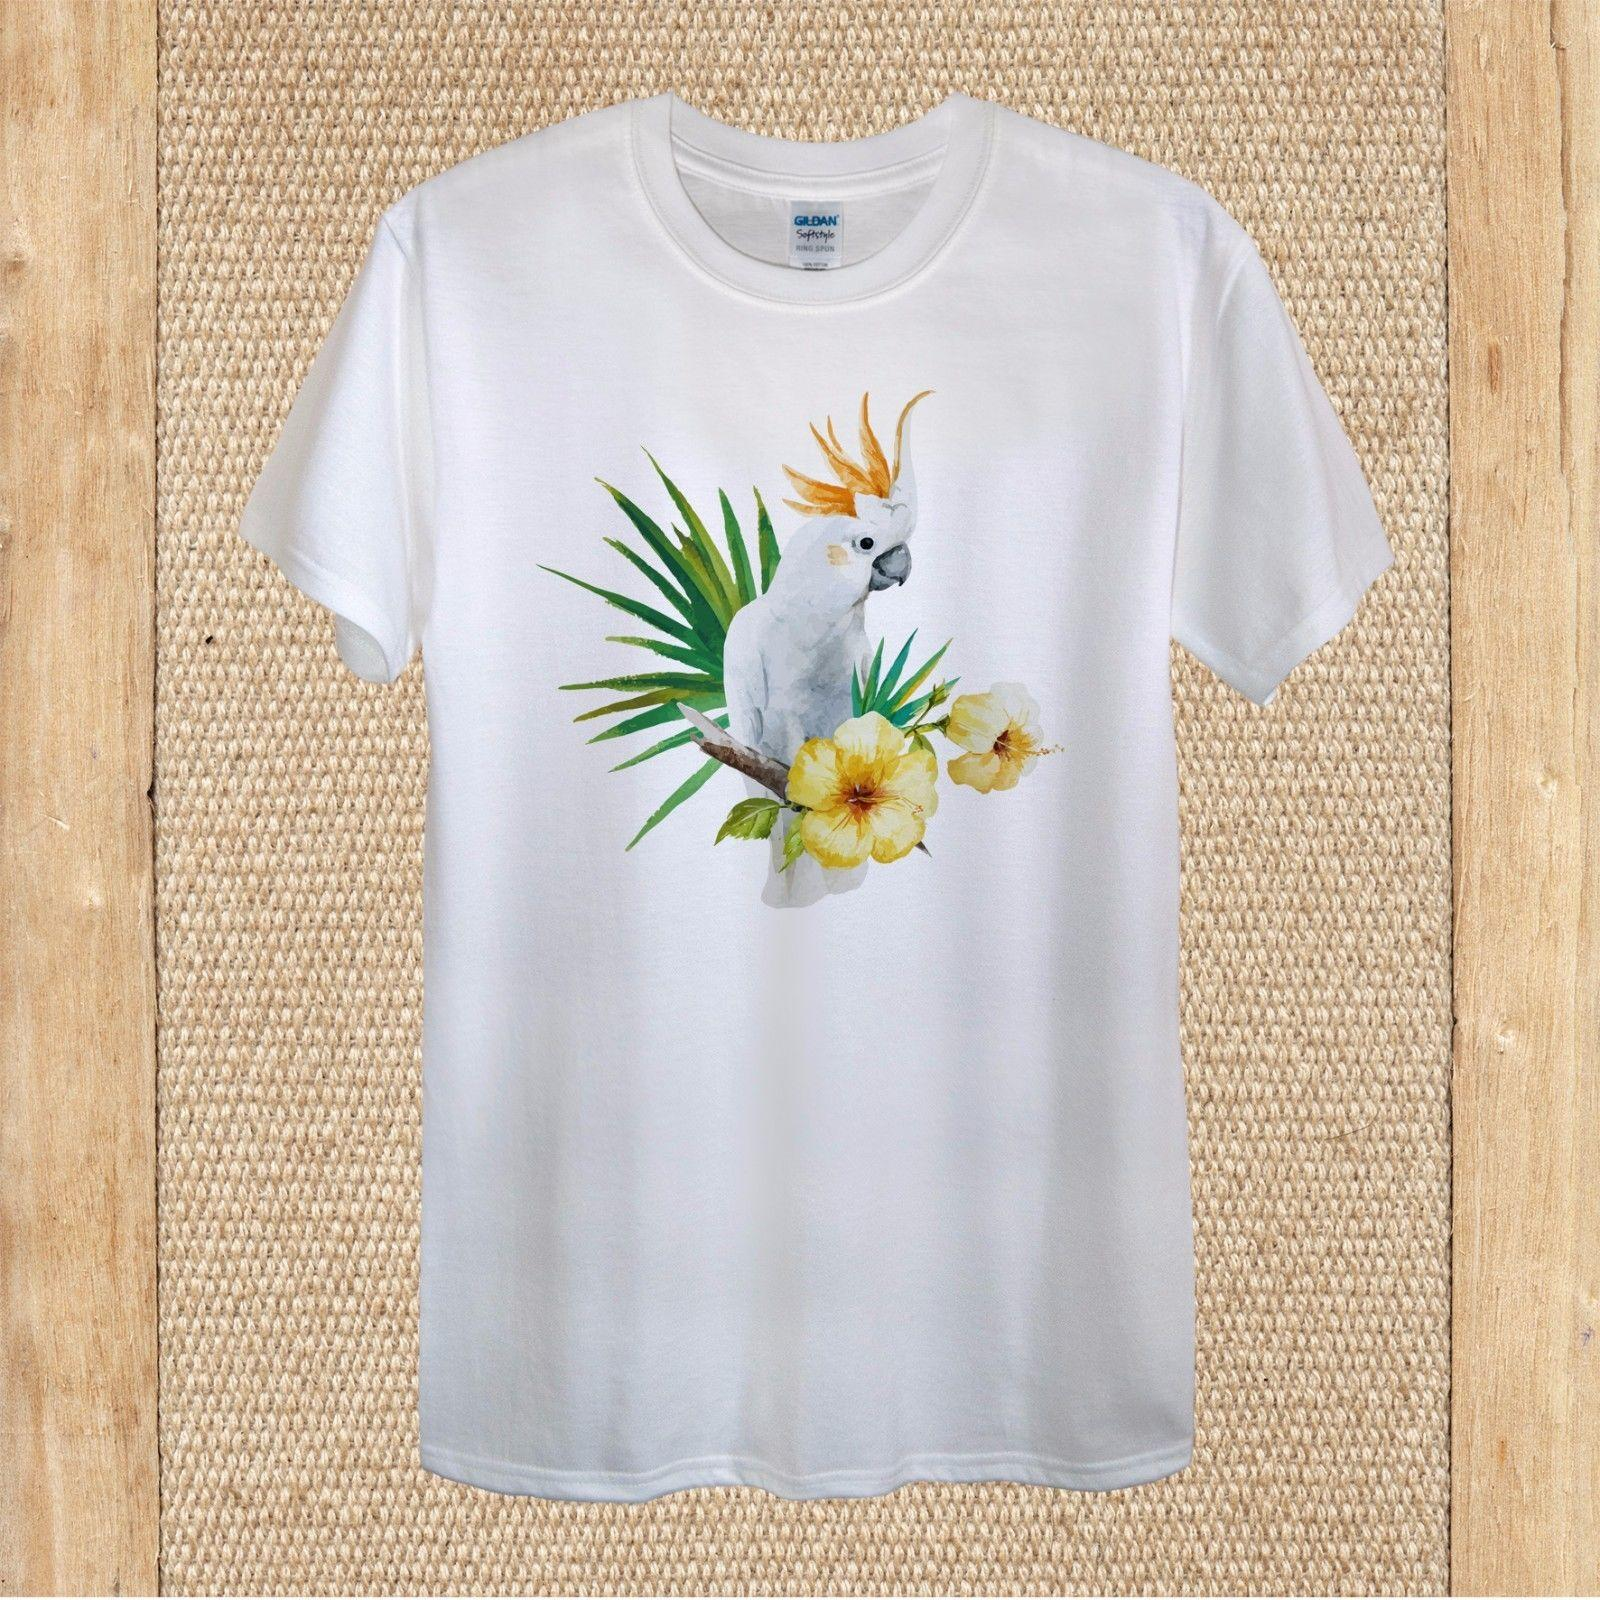 47badd766d1a Tropical Parrot Cockatoo Hibiscus Blooms Summer 100%cotton Unisex Women  Harajuku T Shirt Fashion Classic Unique Funny Tshirts Long Sleeve Shirts  From ...